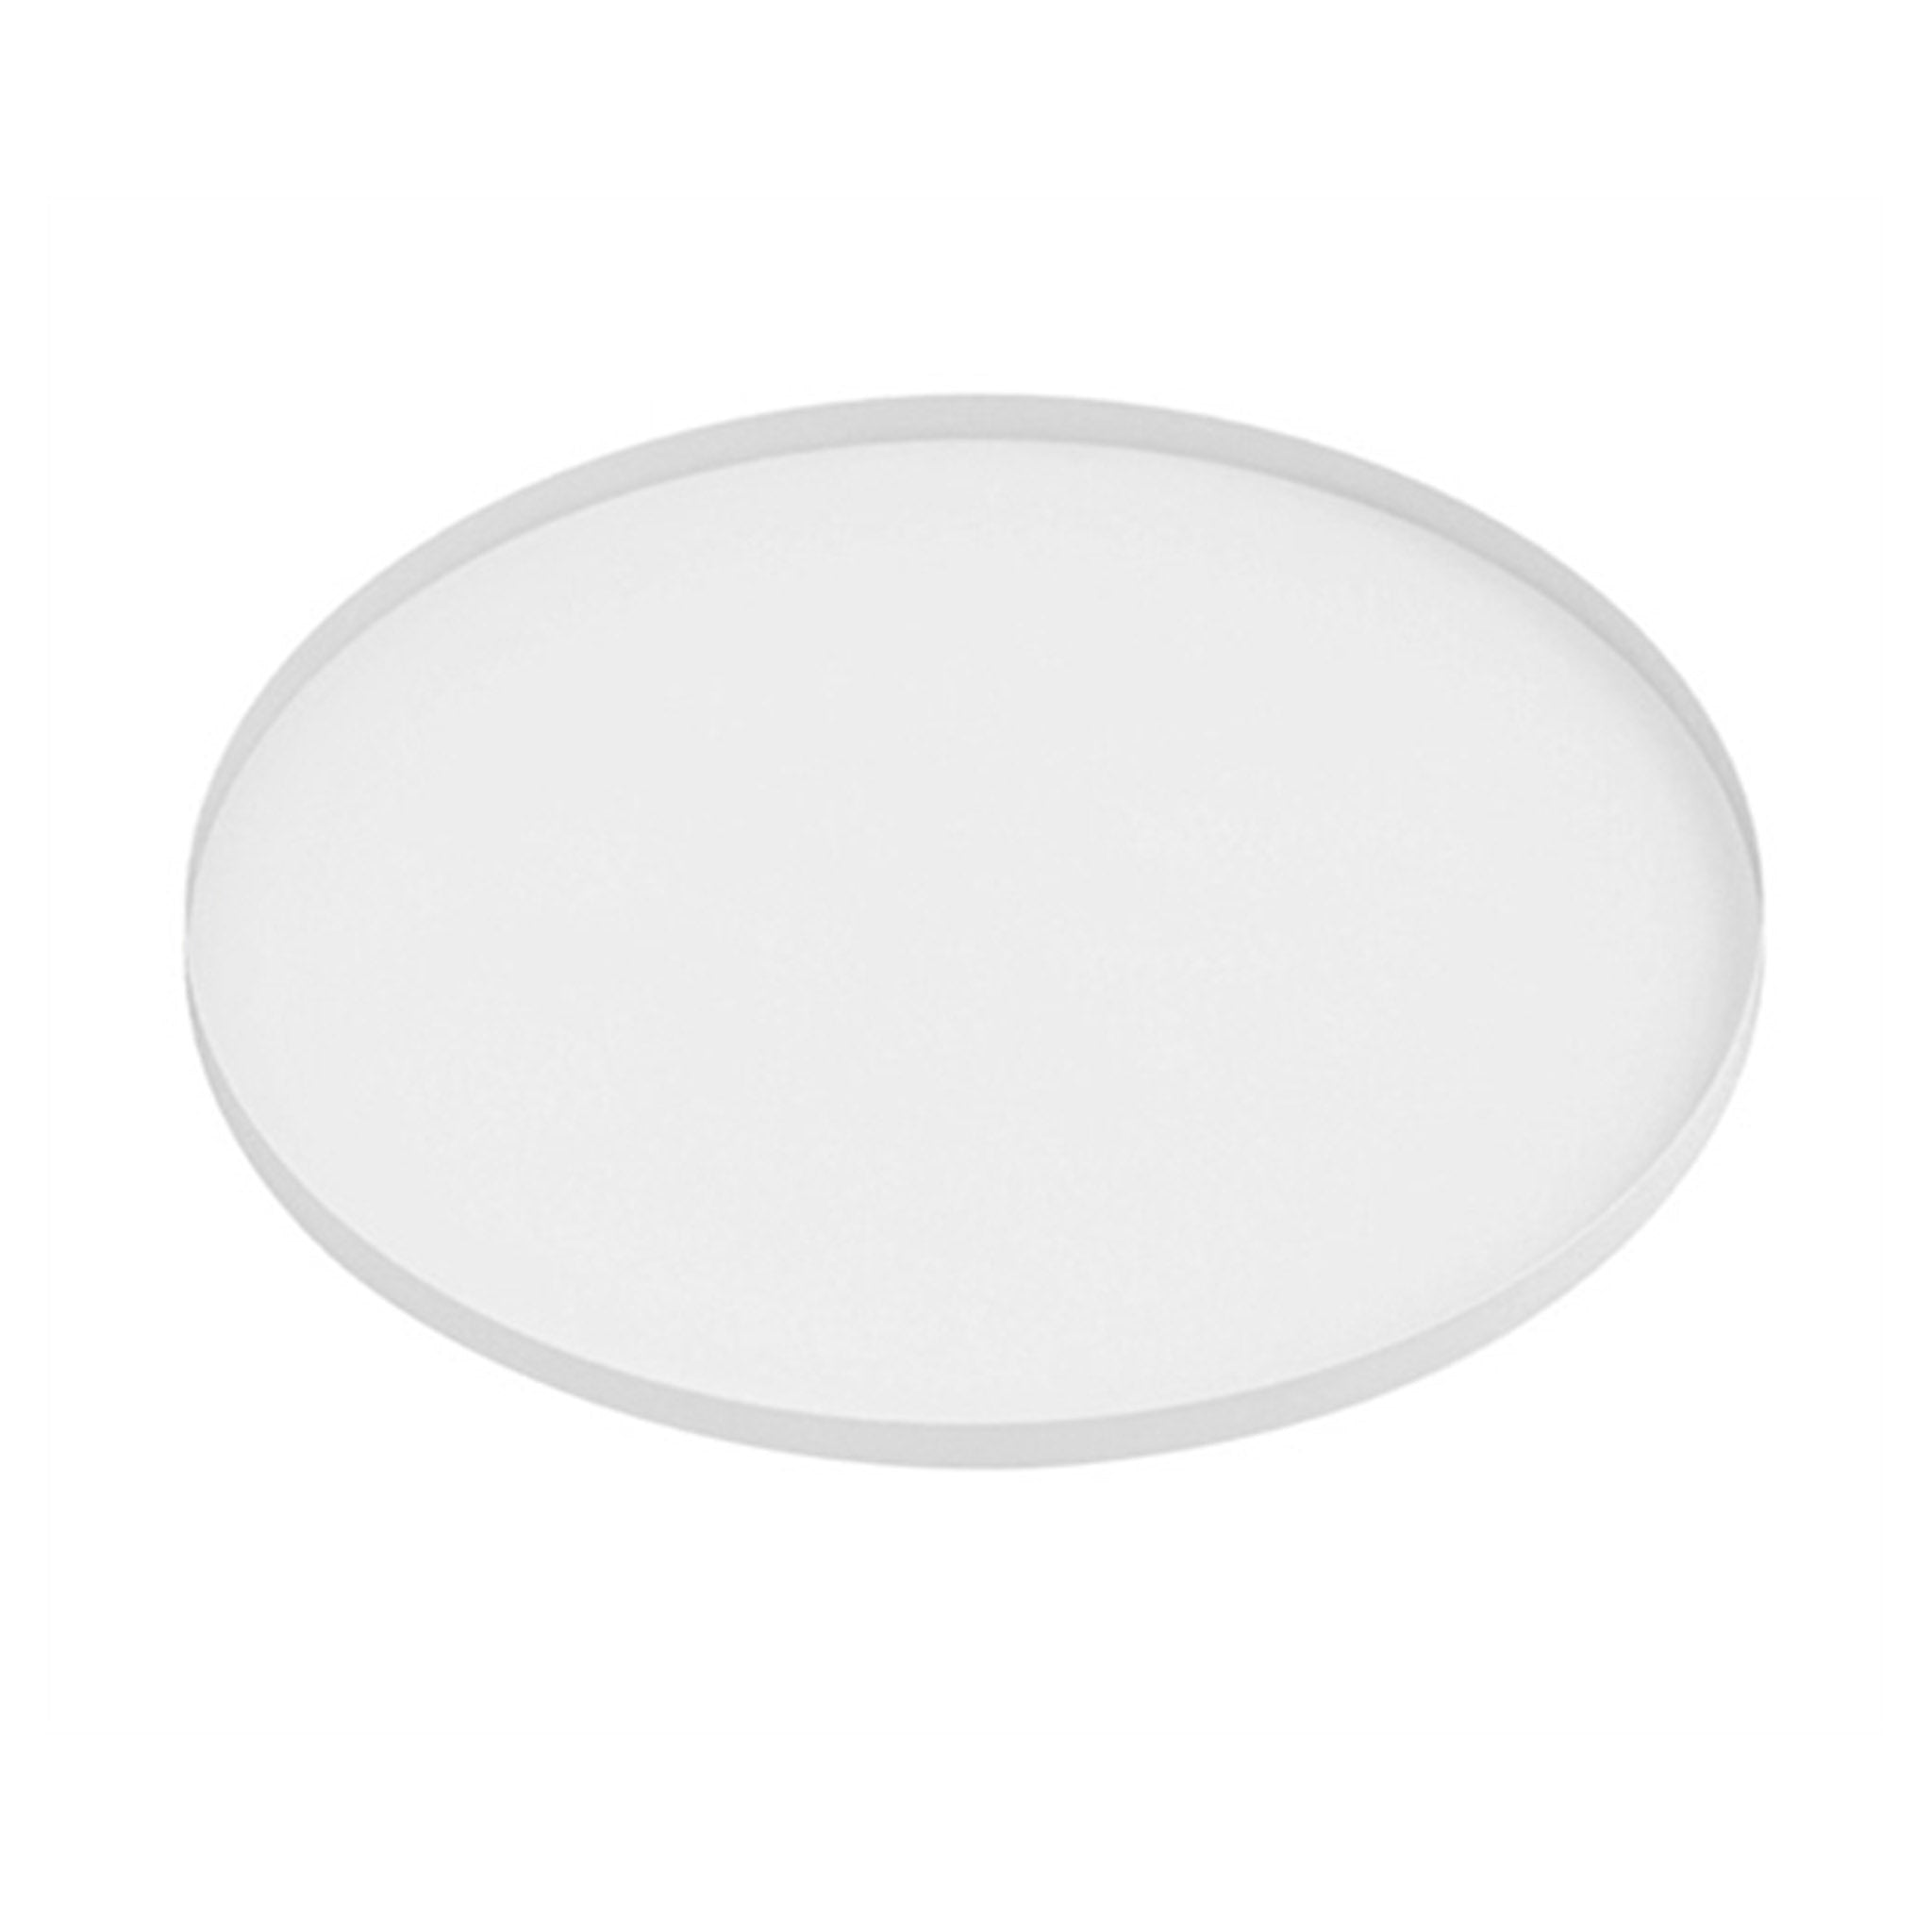 Round Iron Tray - White - Five And Dime